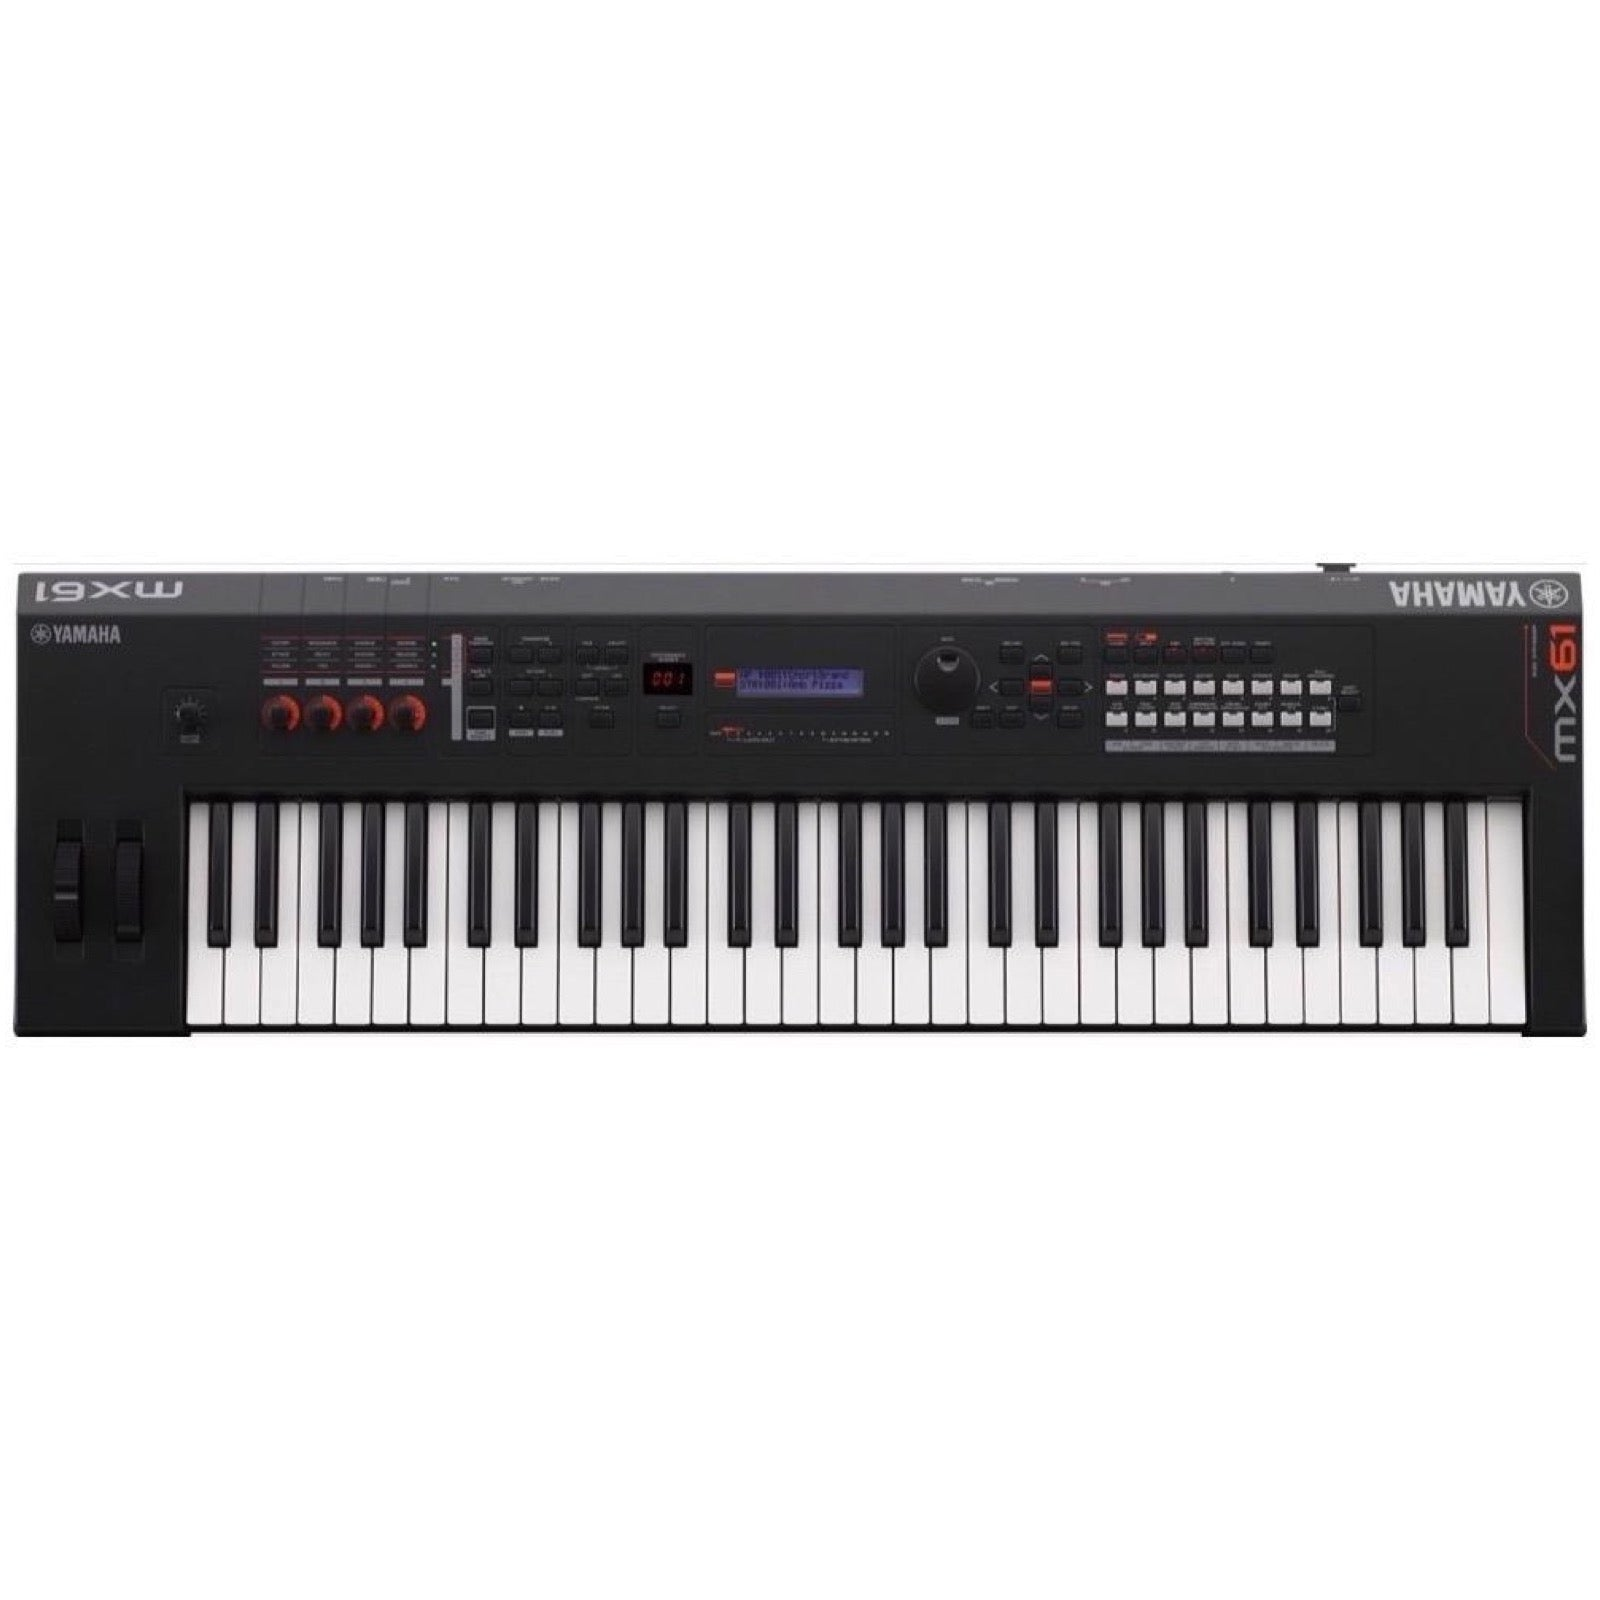 Yamaha MX61 v2 Keyboard Synthesizer, 61-Key, Black